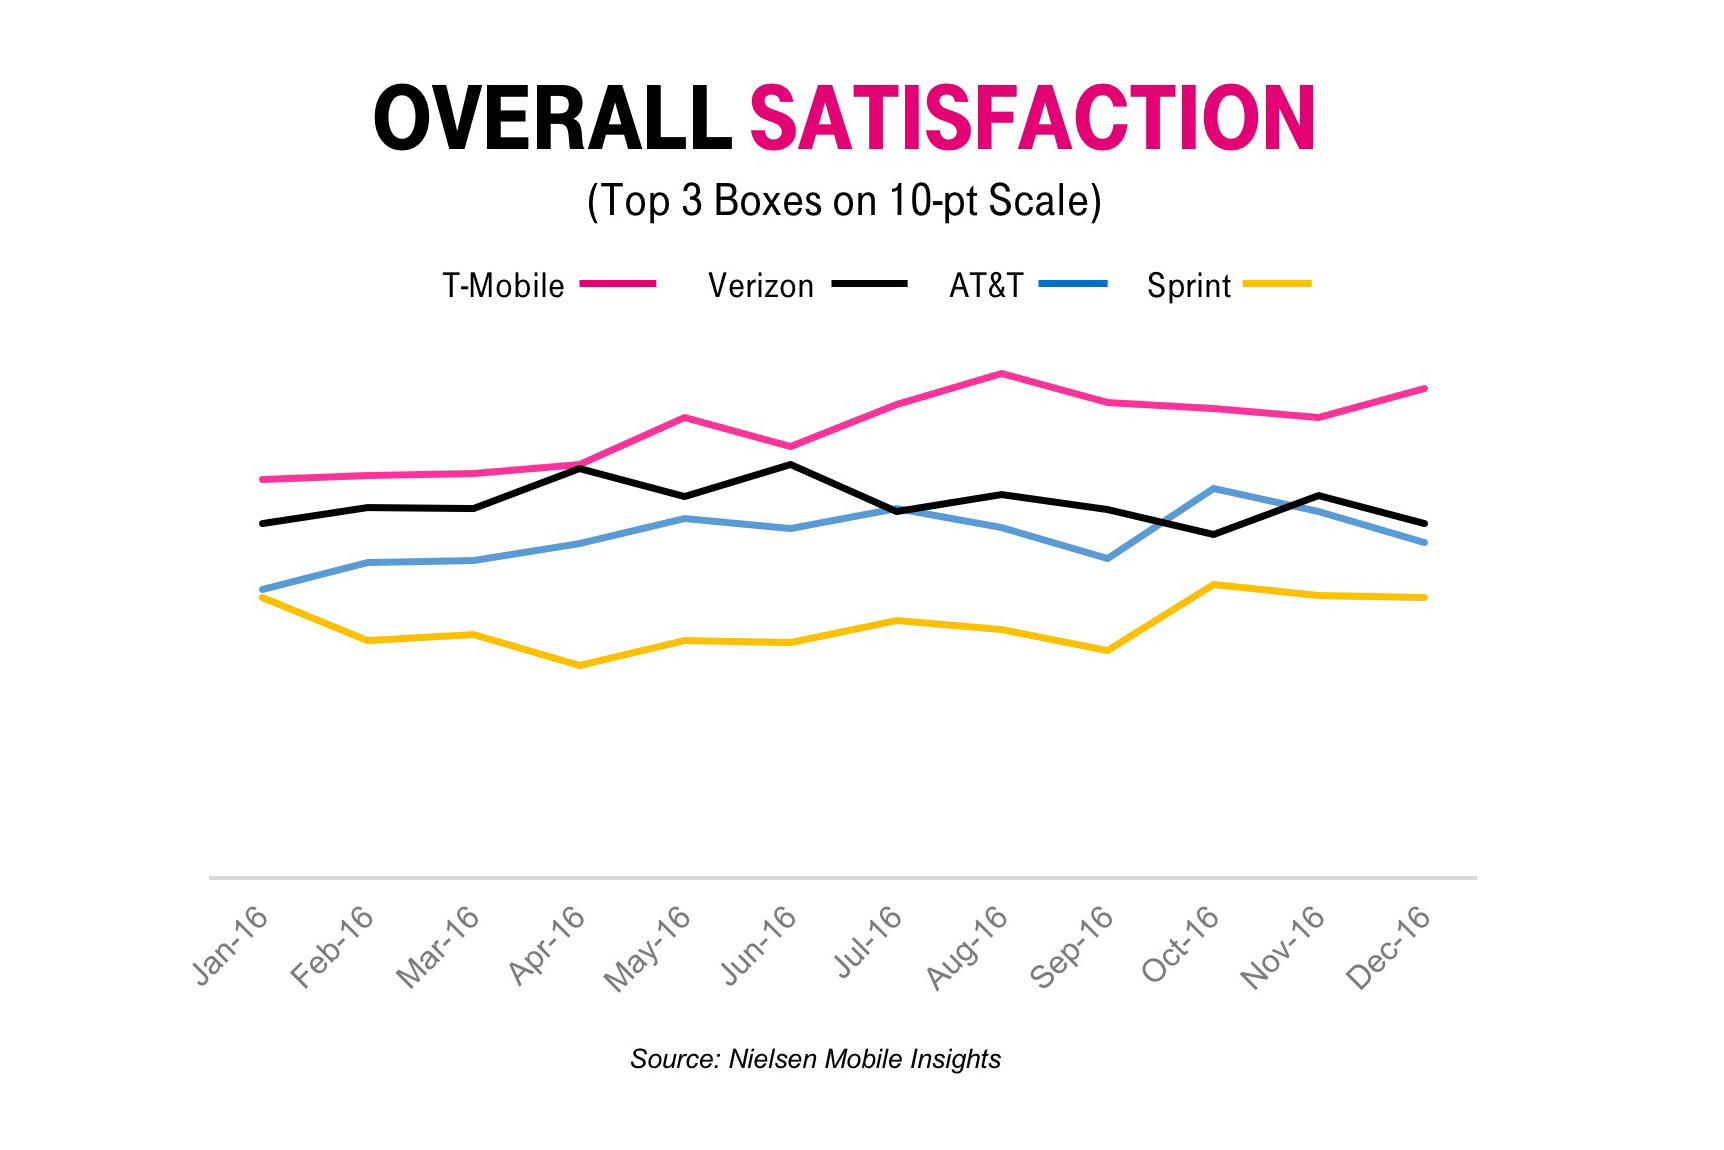 this is why t mobile is everyone s favorite wireless carrier bgr in a press release t mobile ceo john legere responded to the results in his usual way we have the best damn care team in the business at this point